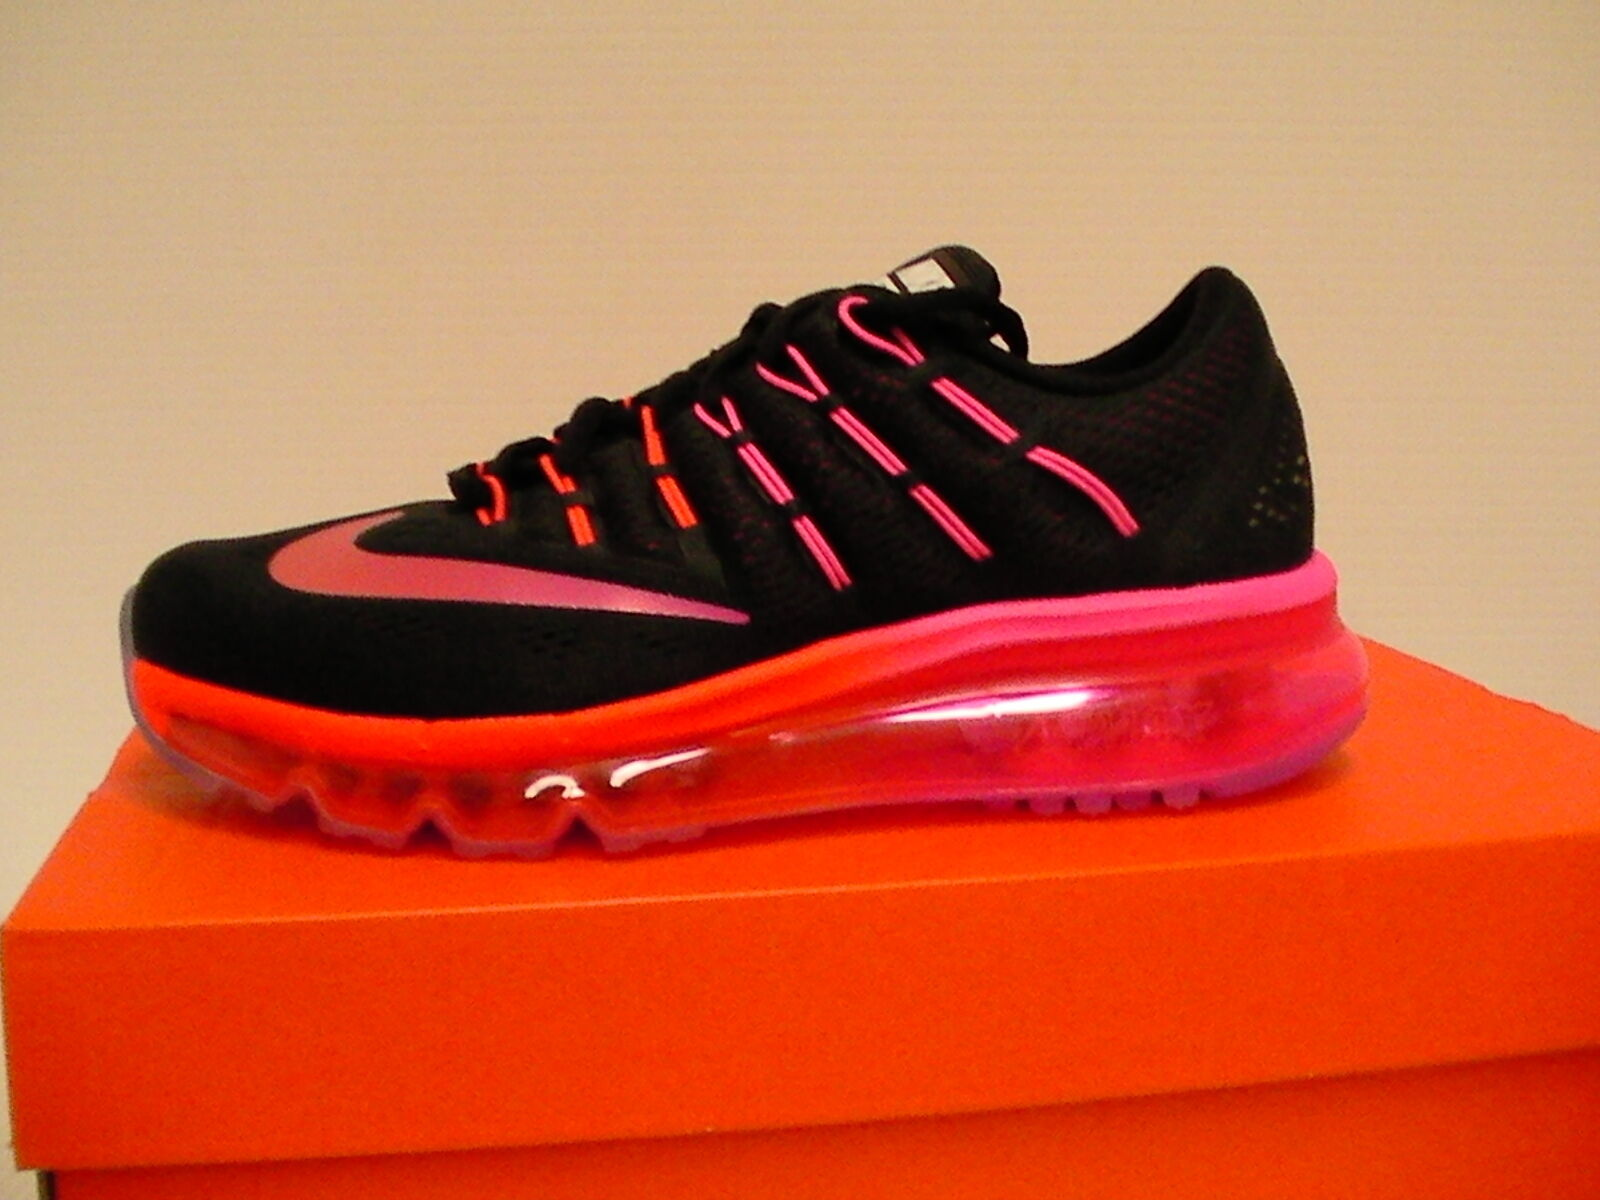 Women's nike air max 2016 running shoes black red bright many sizes